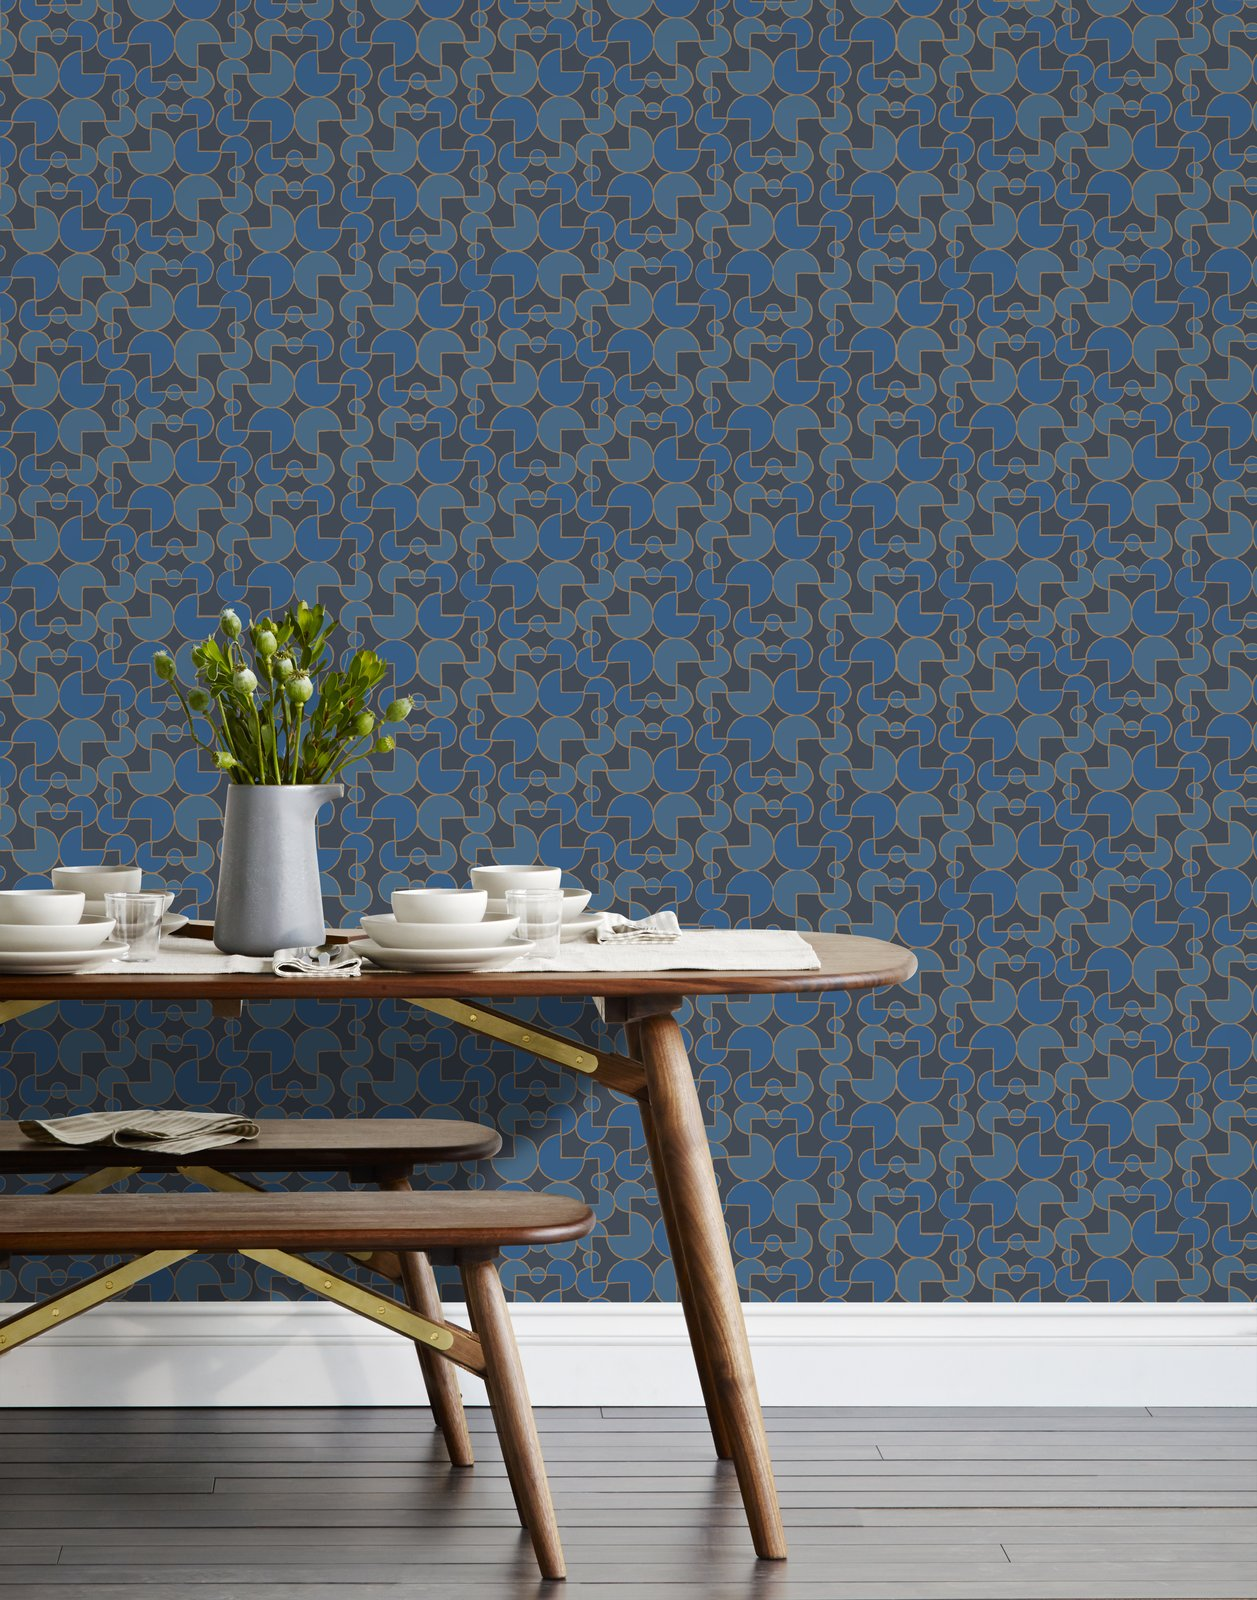 Heath for Hygge & West Wallpaper in Arcade, Navy featured with Dining Table and Benches from Jacob May for Heath: Nomad Collection, and a Heath Clay Studio Limited Editions Vase with Chez Panisse Dinnerware and Native Organics linens.   Pattern from Jacob May for Heath